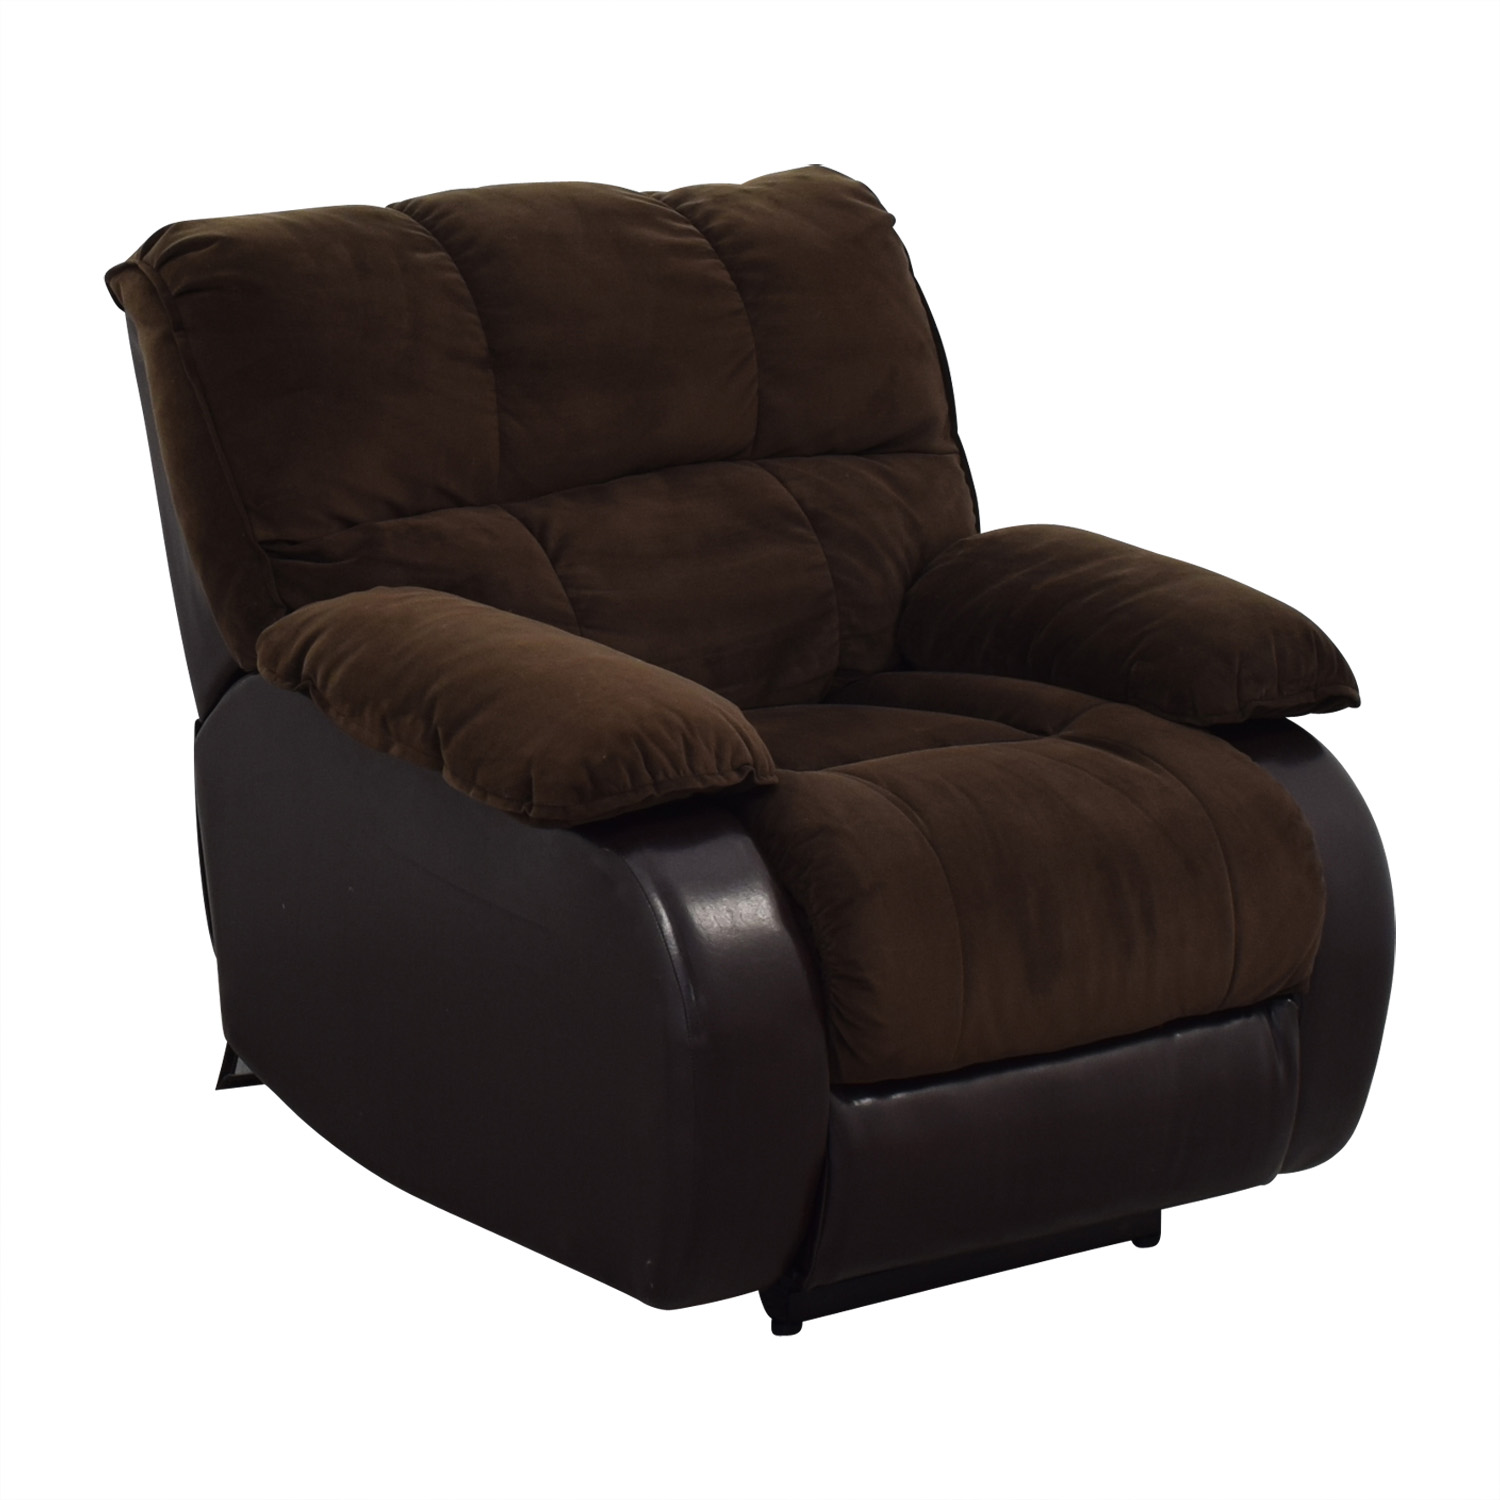 Raymour & Flanigan Raymour & Flanigan Recliner for sale